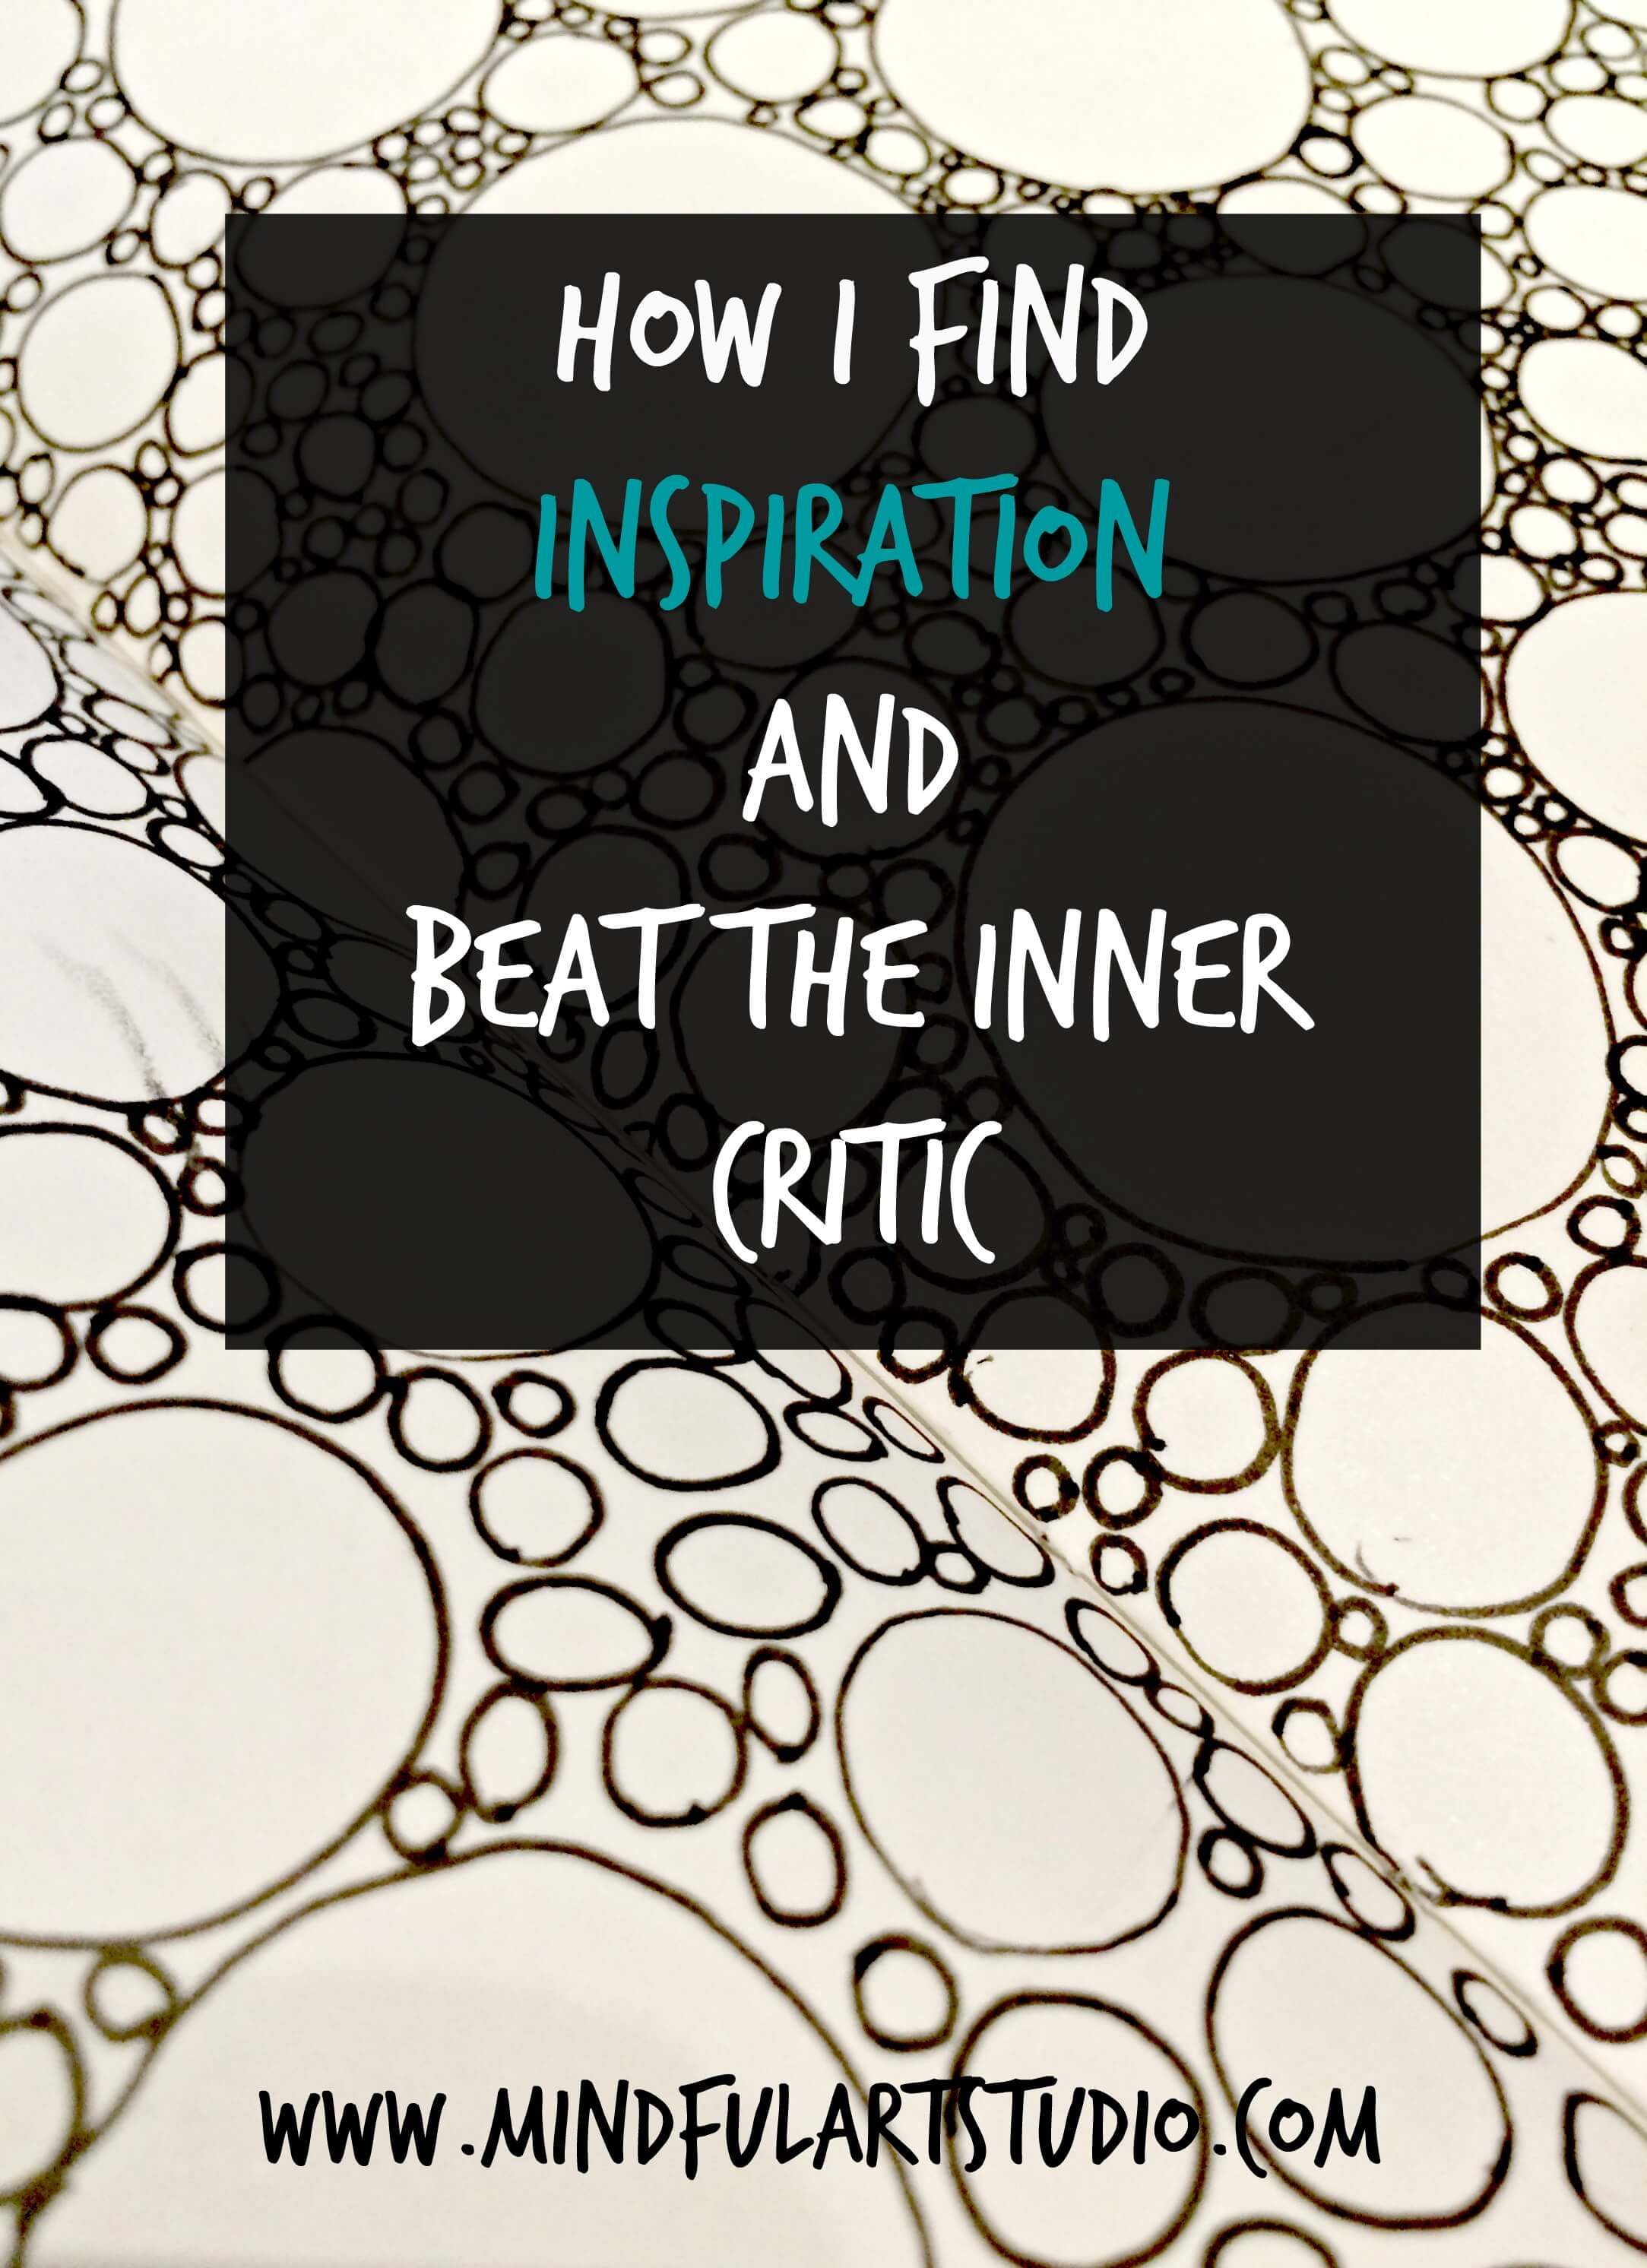 How I Find Artistic Inspiration and Beat the Inner Critic